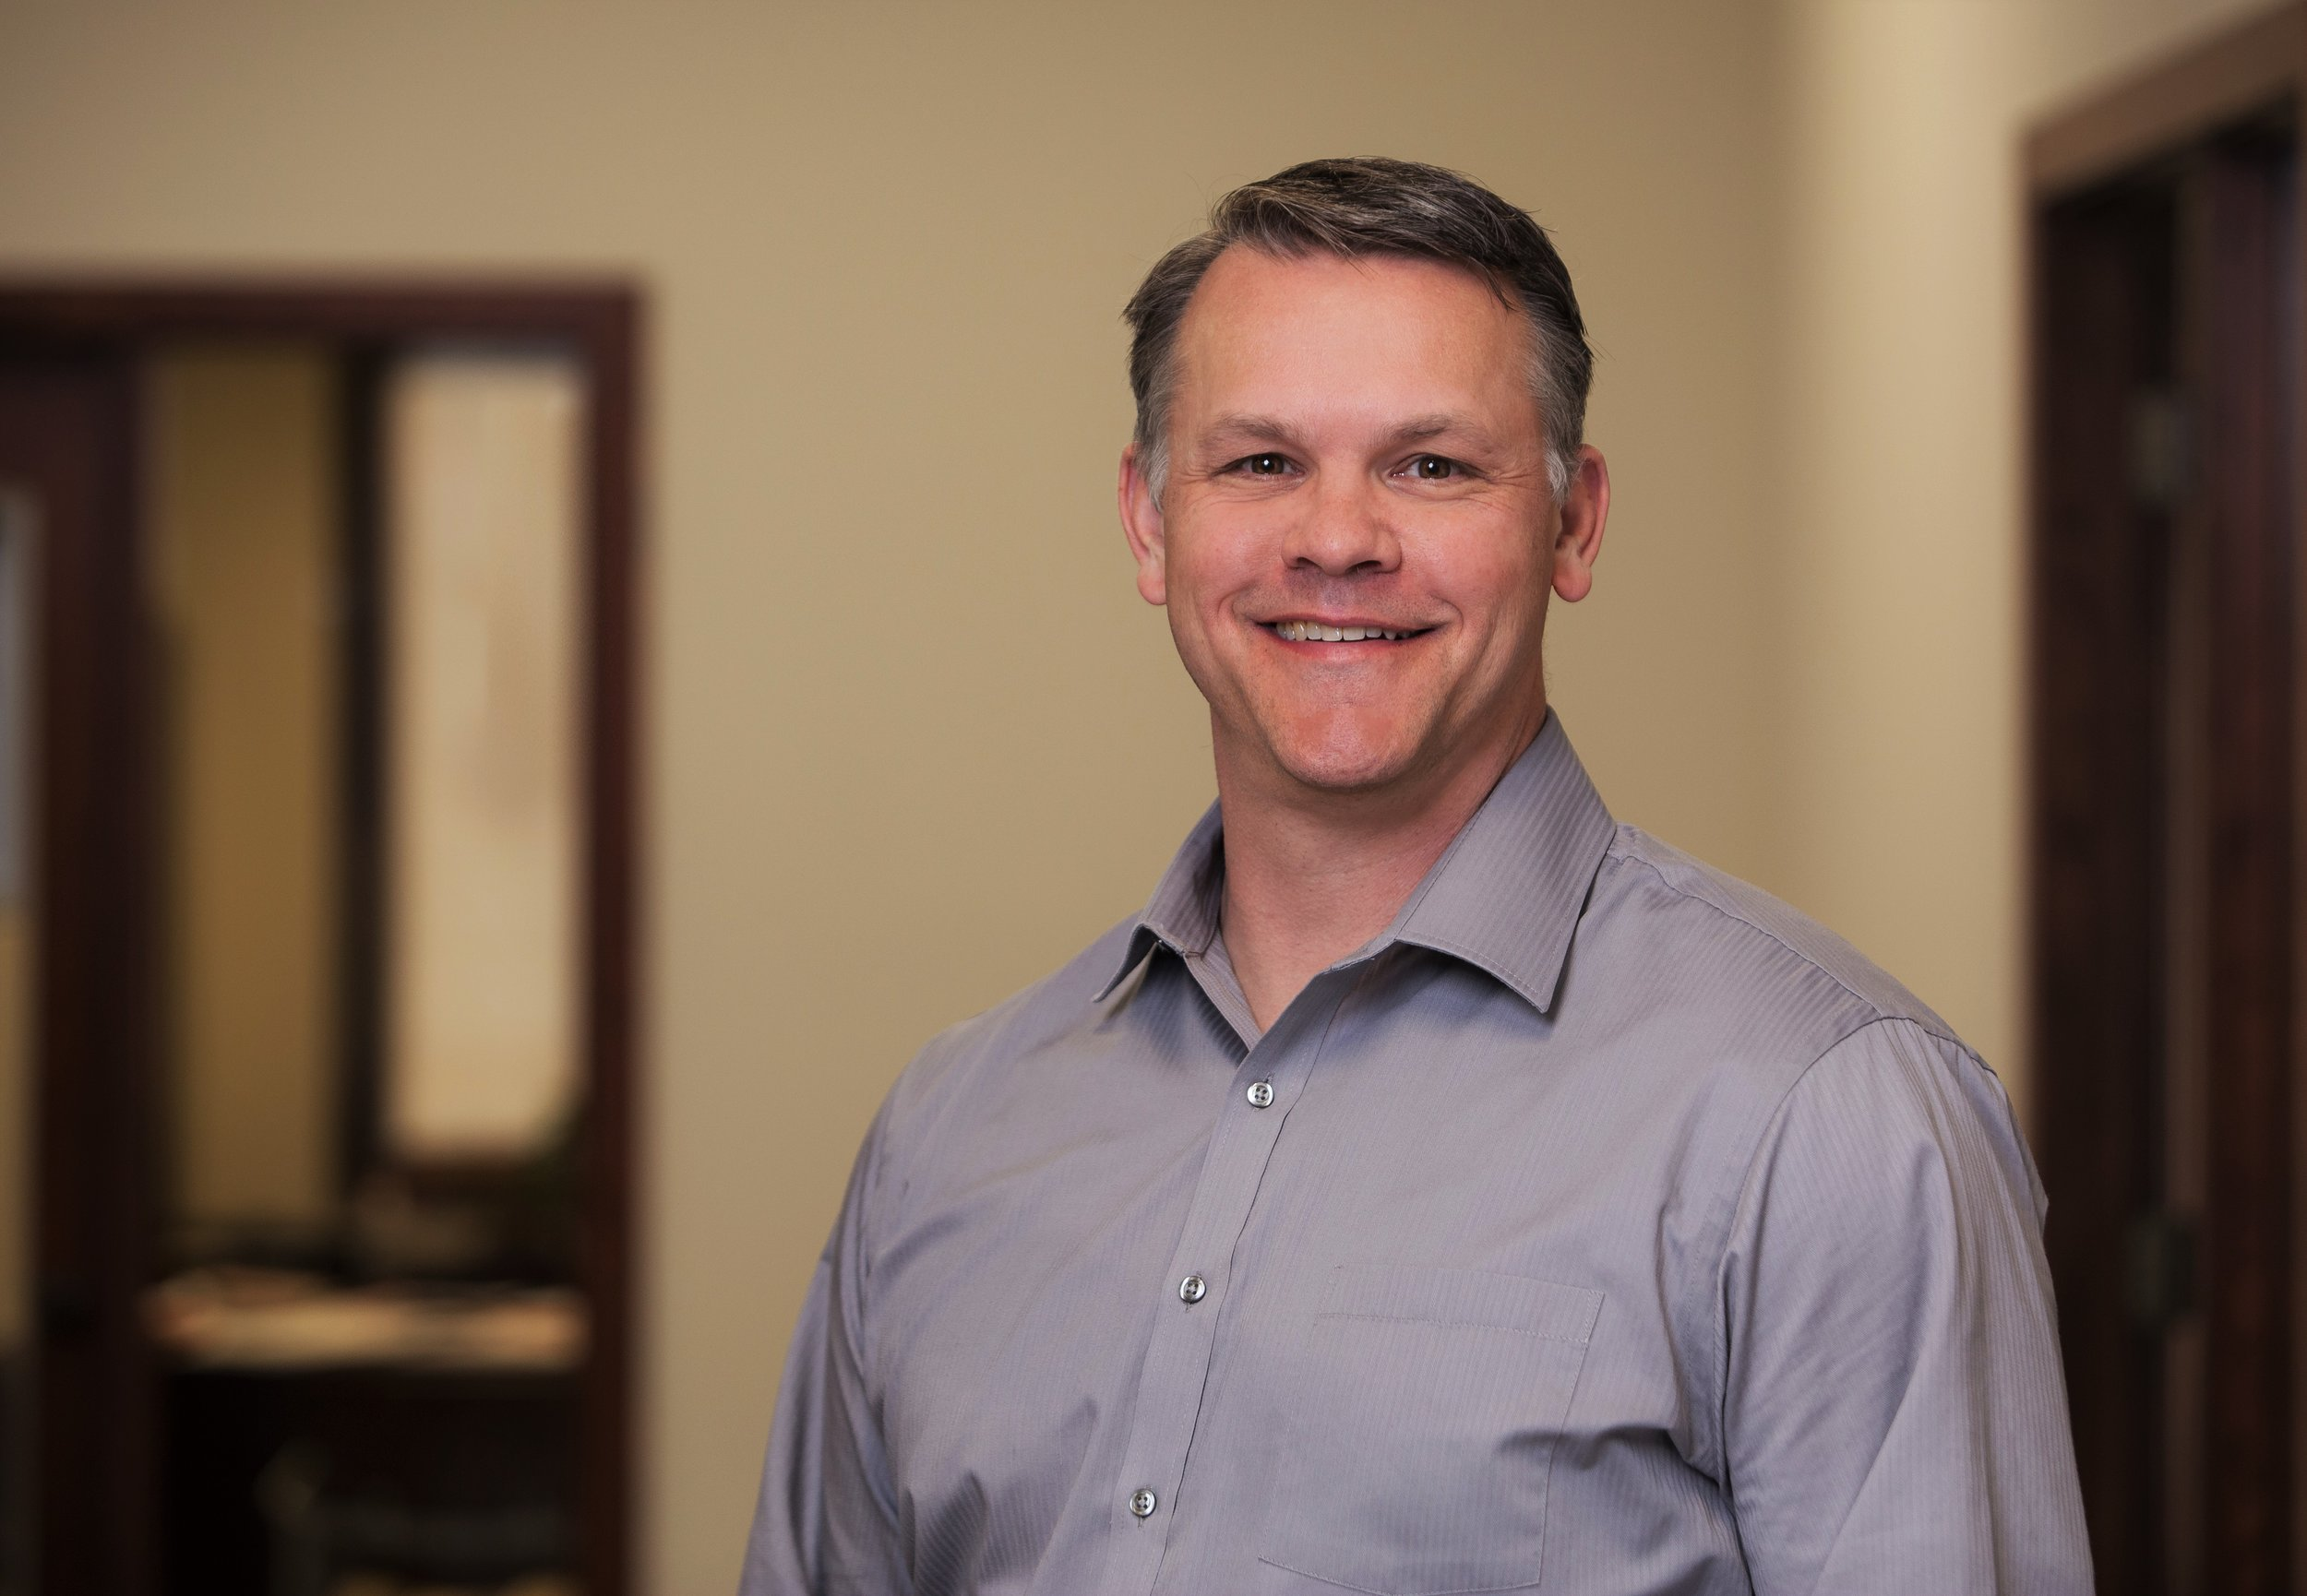 Chris Stroup - Benefits AdvisorChris started at Vaaler Insurance in July of 2018. He graduated from North Dakota State University, and spent 25 years in education as a teacher and coach. His hobbies include golf, running, reading, and spending time with his wife and two daughters.